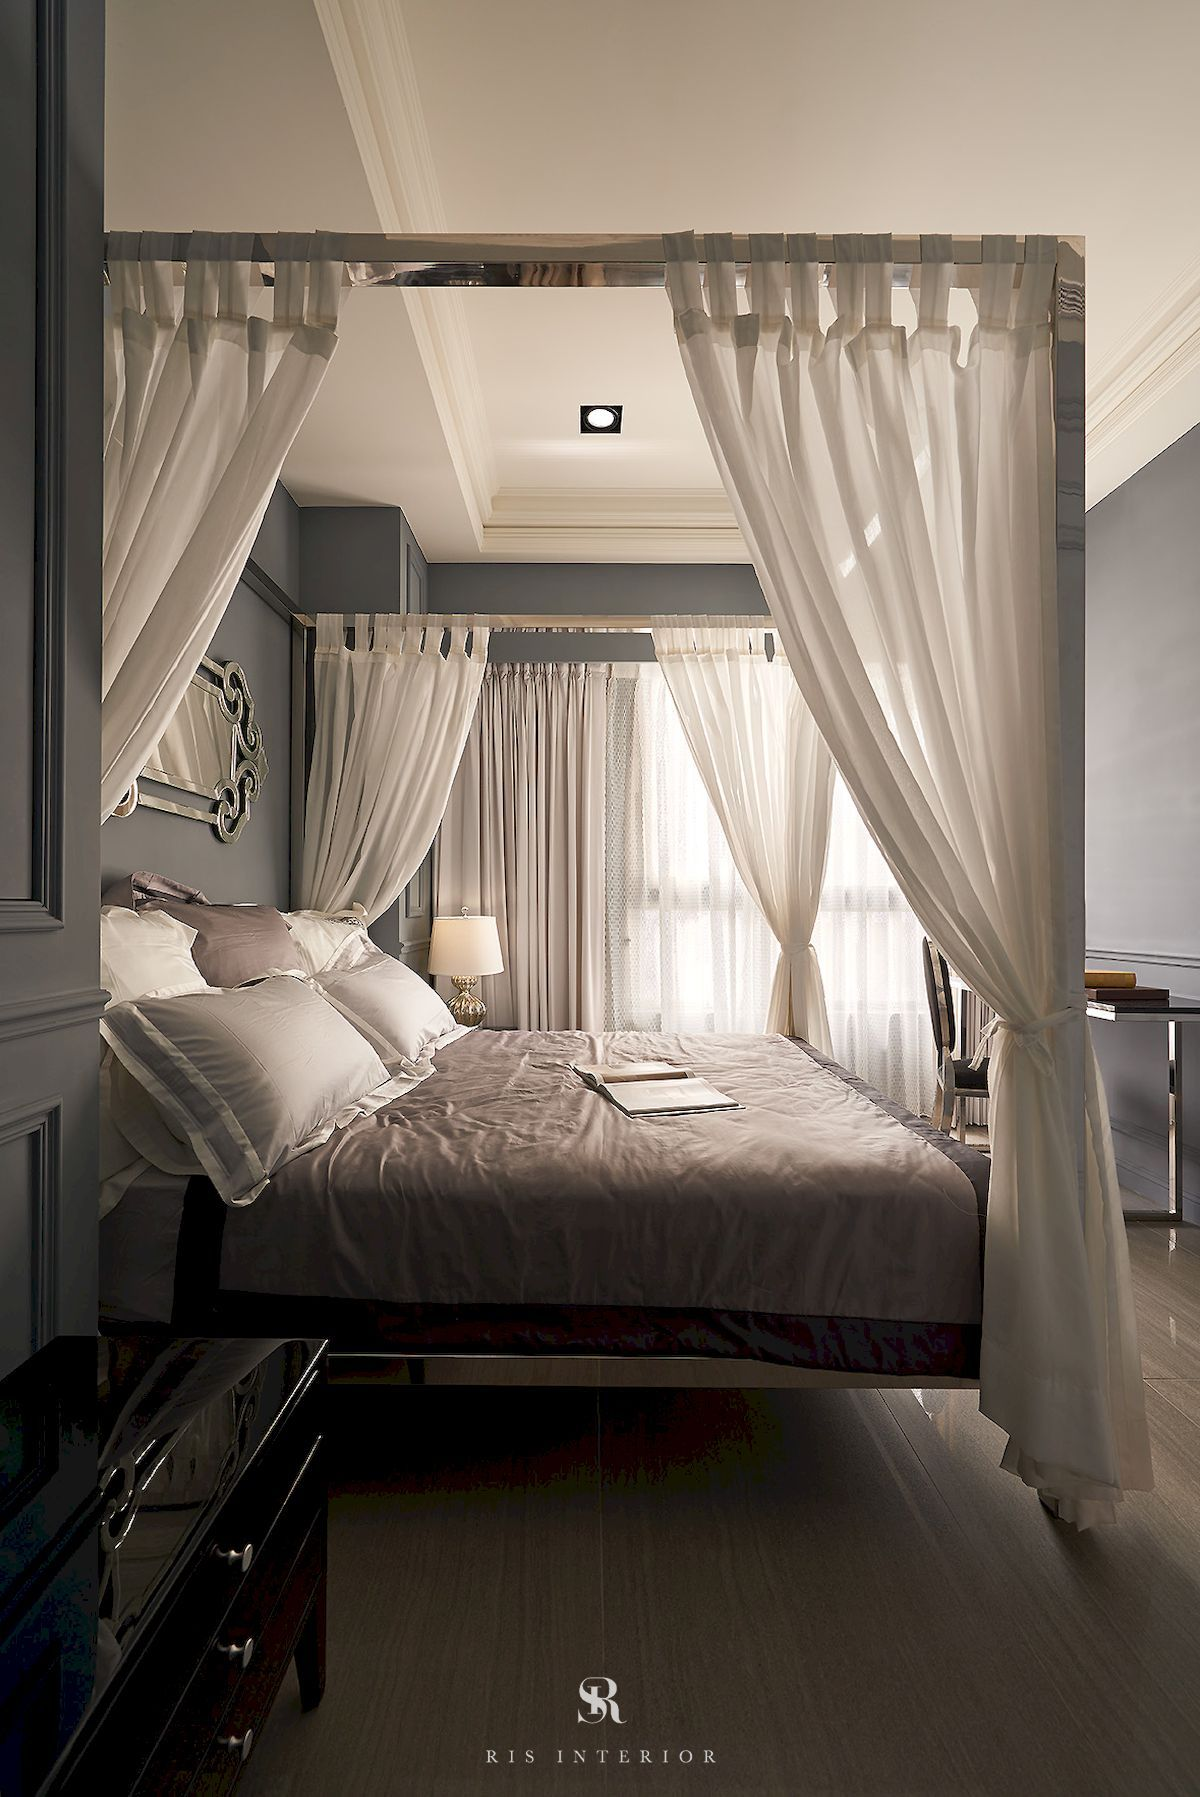 Styles French American Luxury Colors Slate Grayish Blue Features Pole Bed Venetian Mirror Dec Apartment Projects Mirror Decor Interior Design Projects